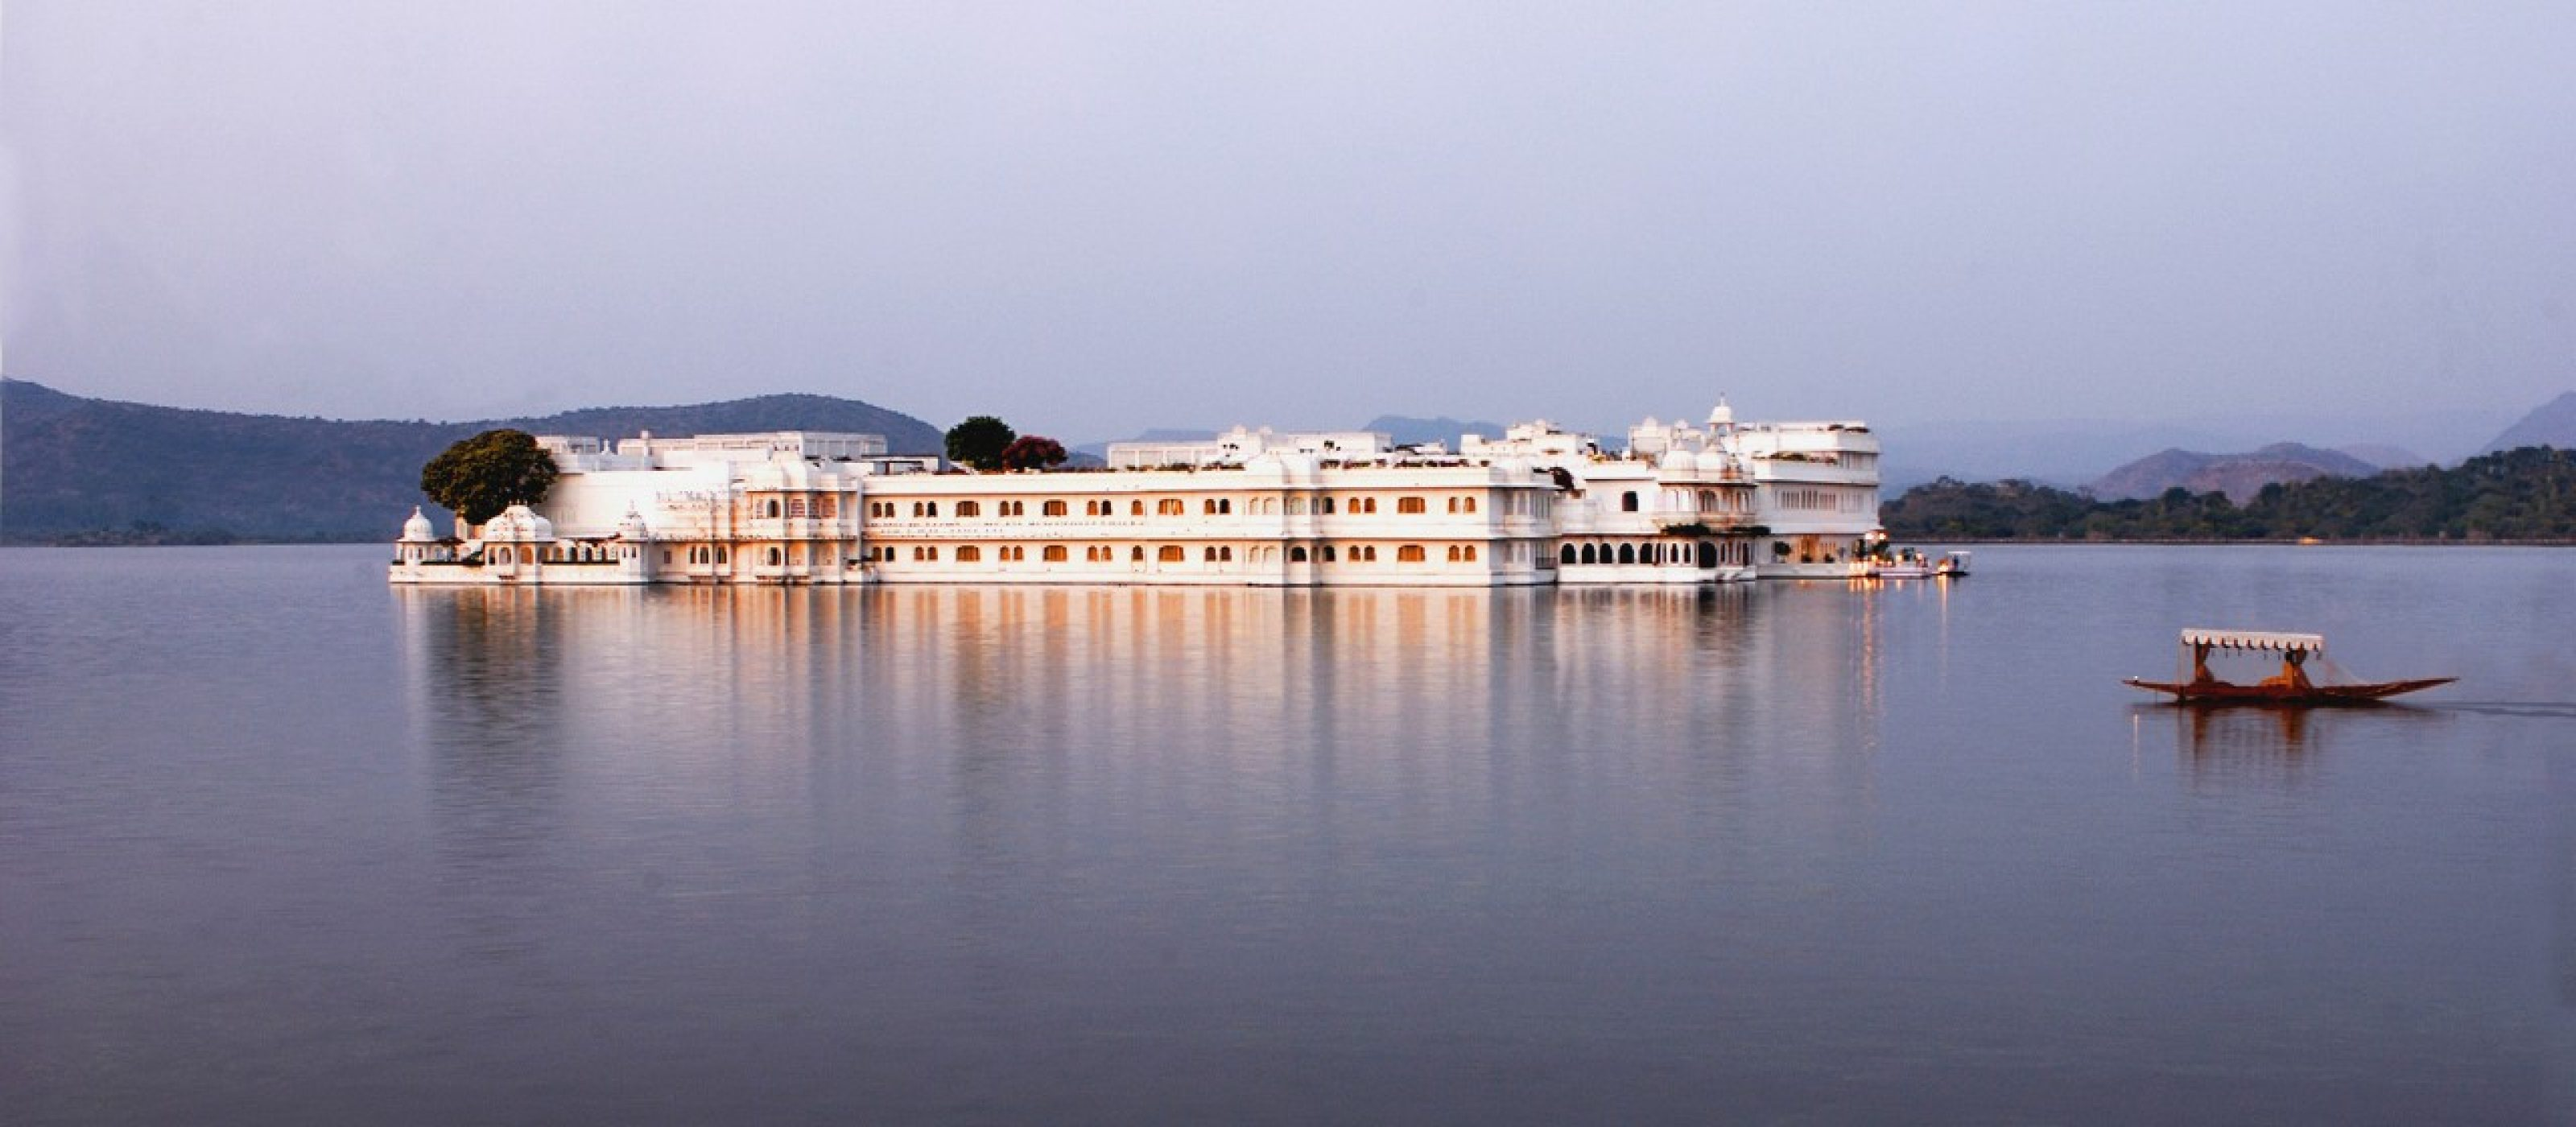 Taj Lake Palace in Udaipur, India